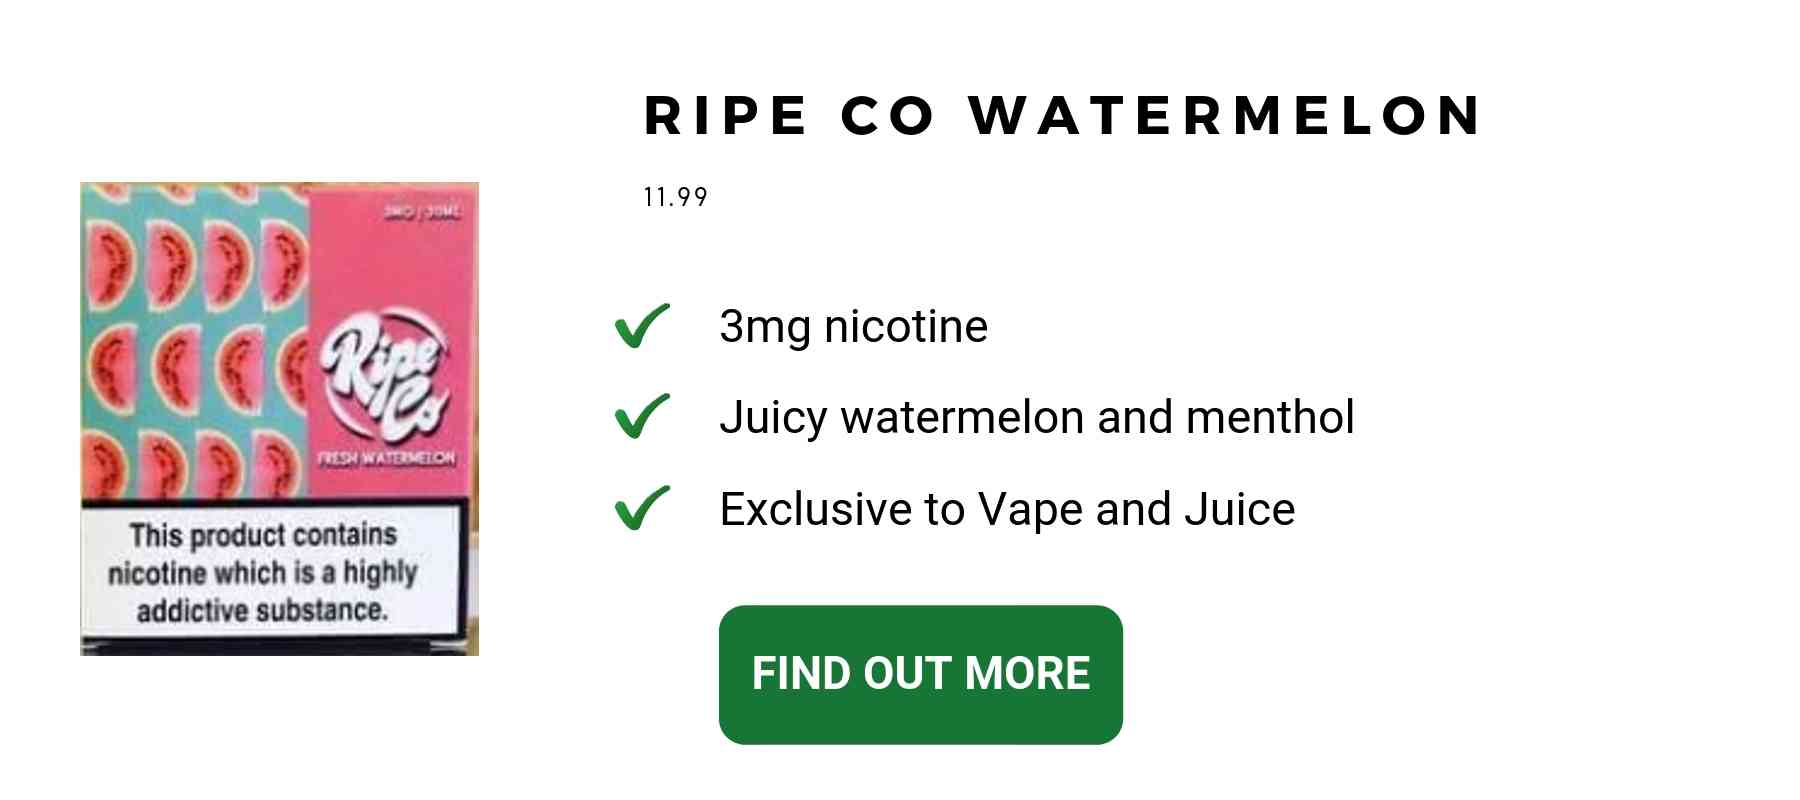 Ripe Co Watermelon